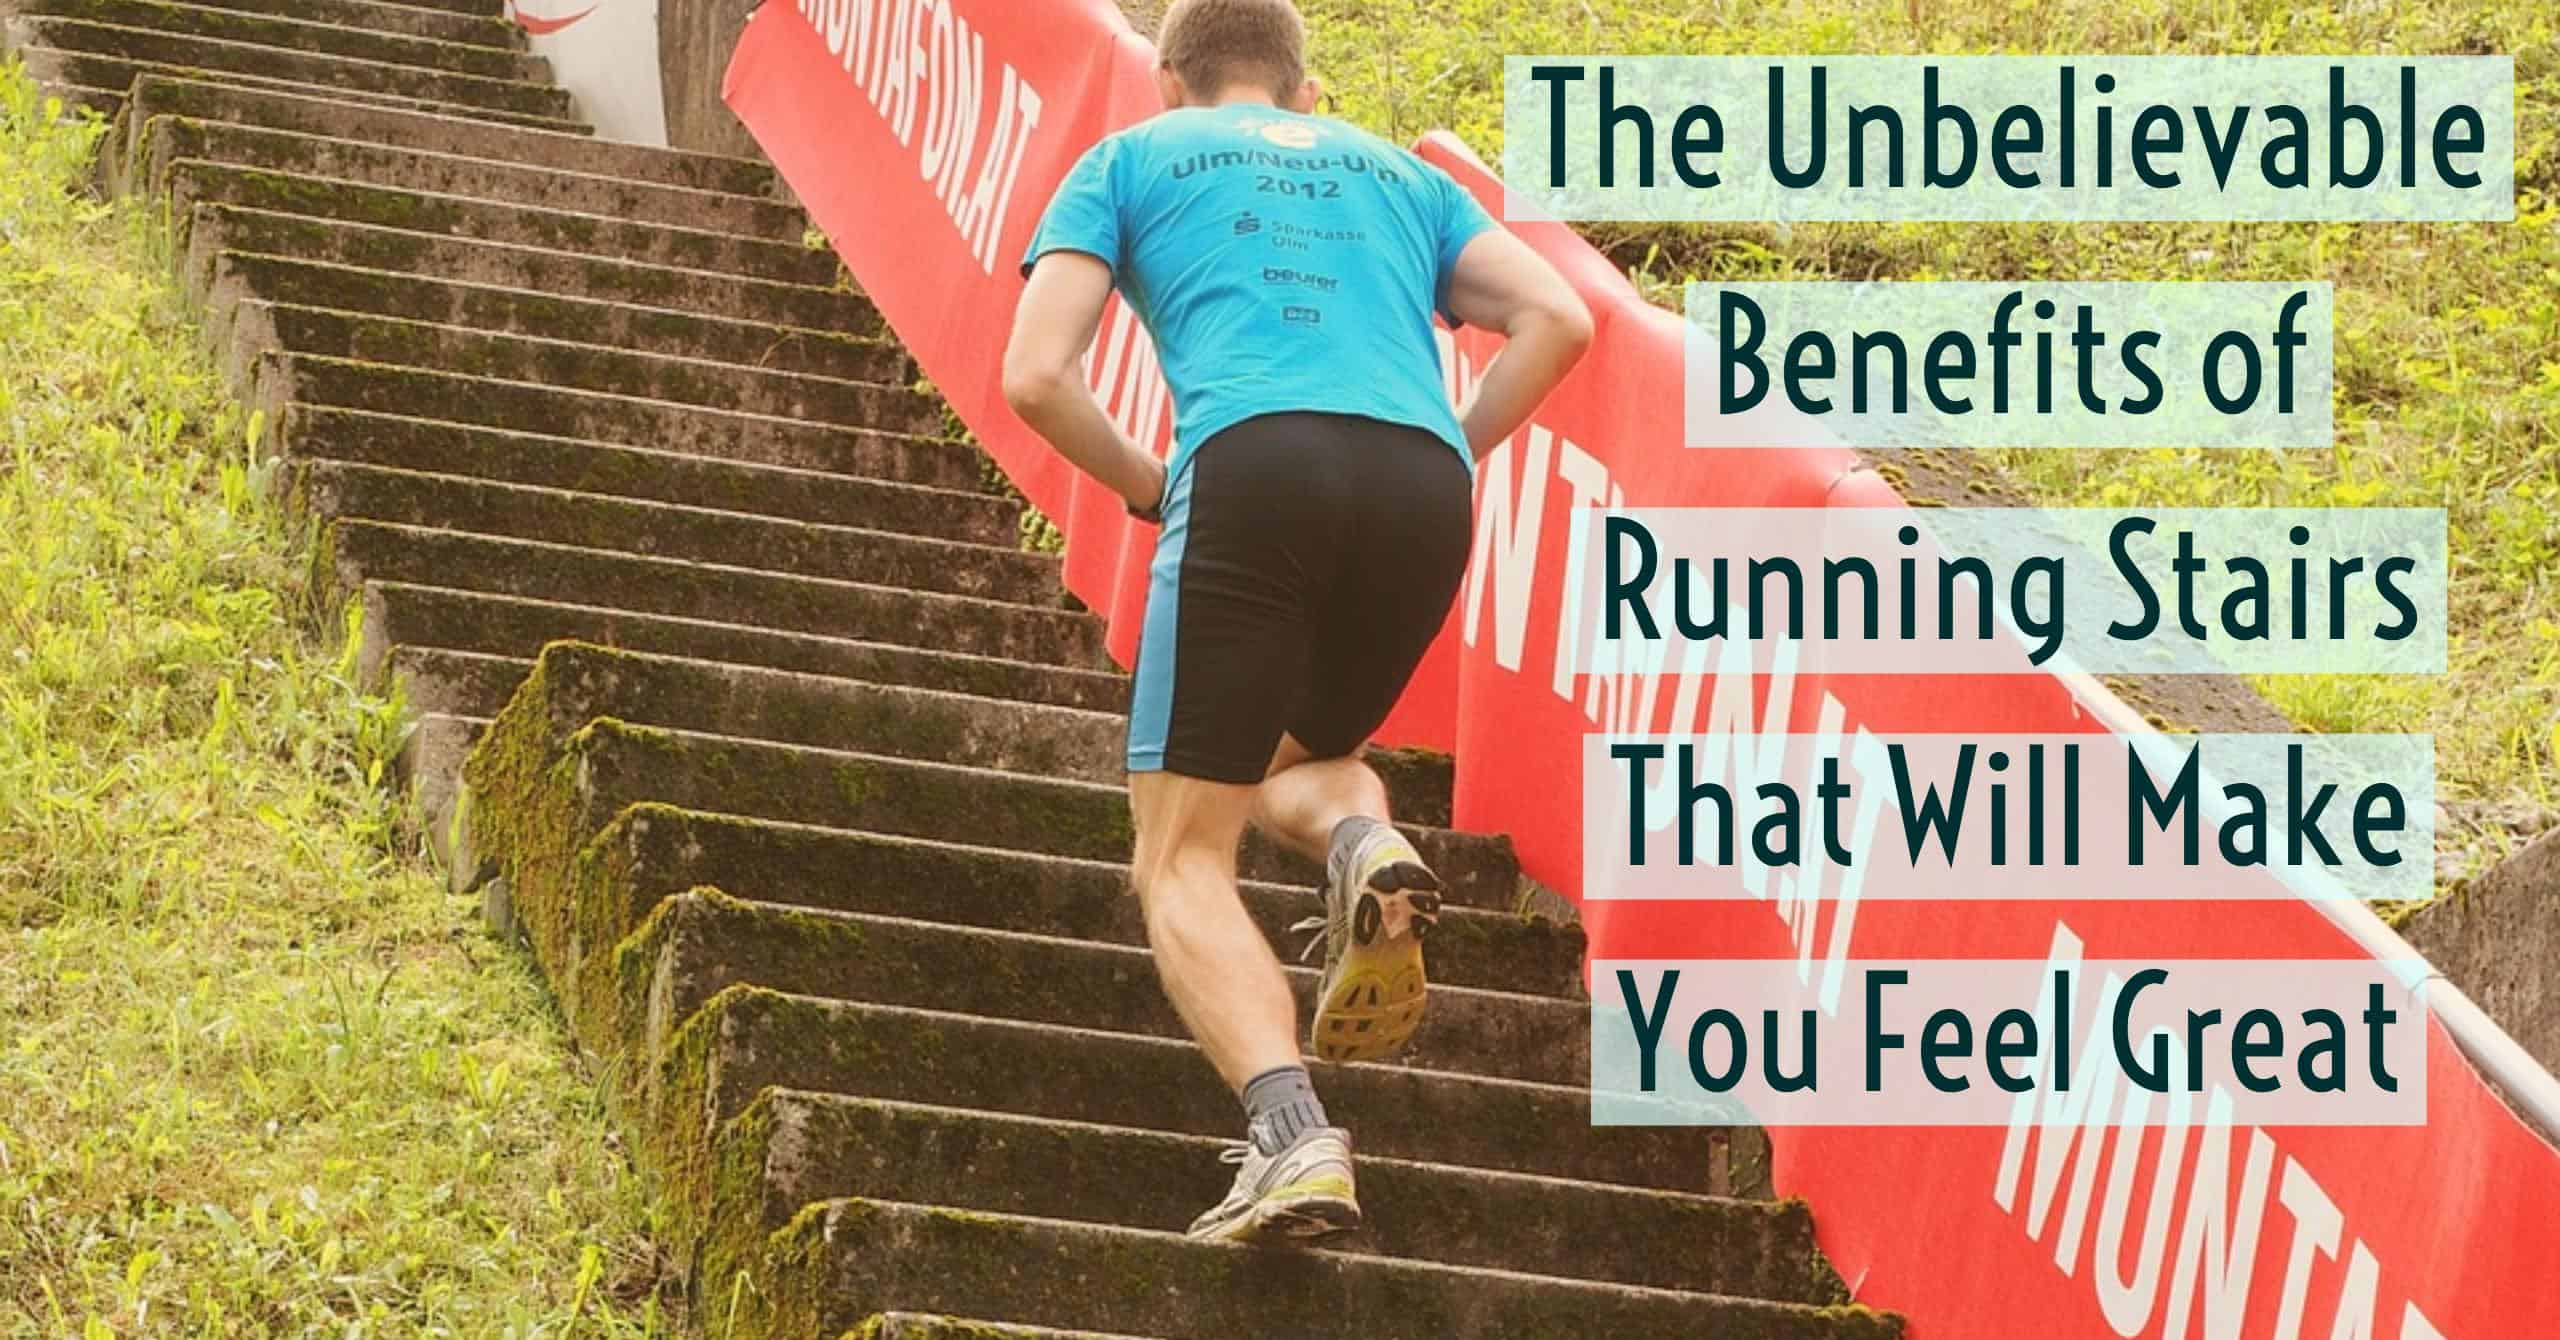 Running staris as part of your 5K routine has the ability to really help your training. We break do the unbelievable benefits of running stairs that will make you feel great